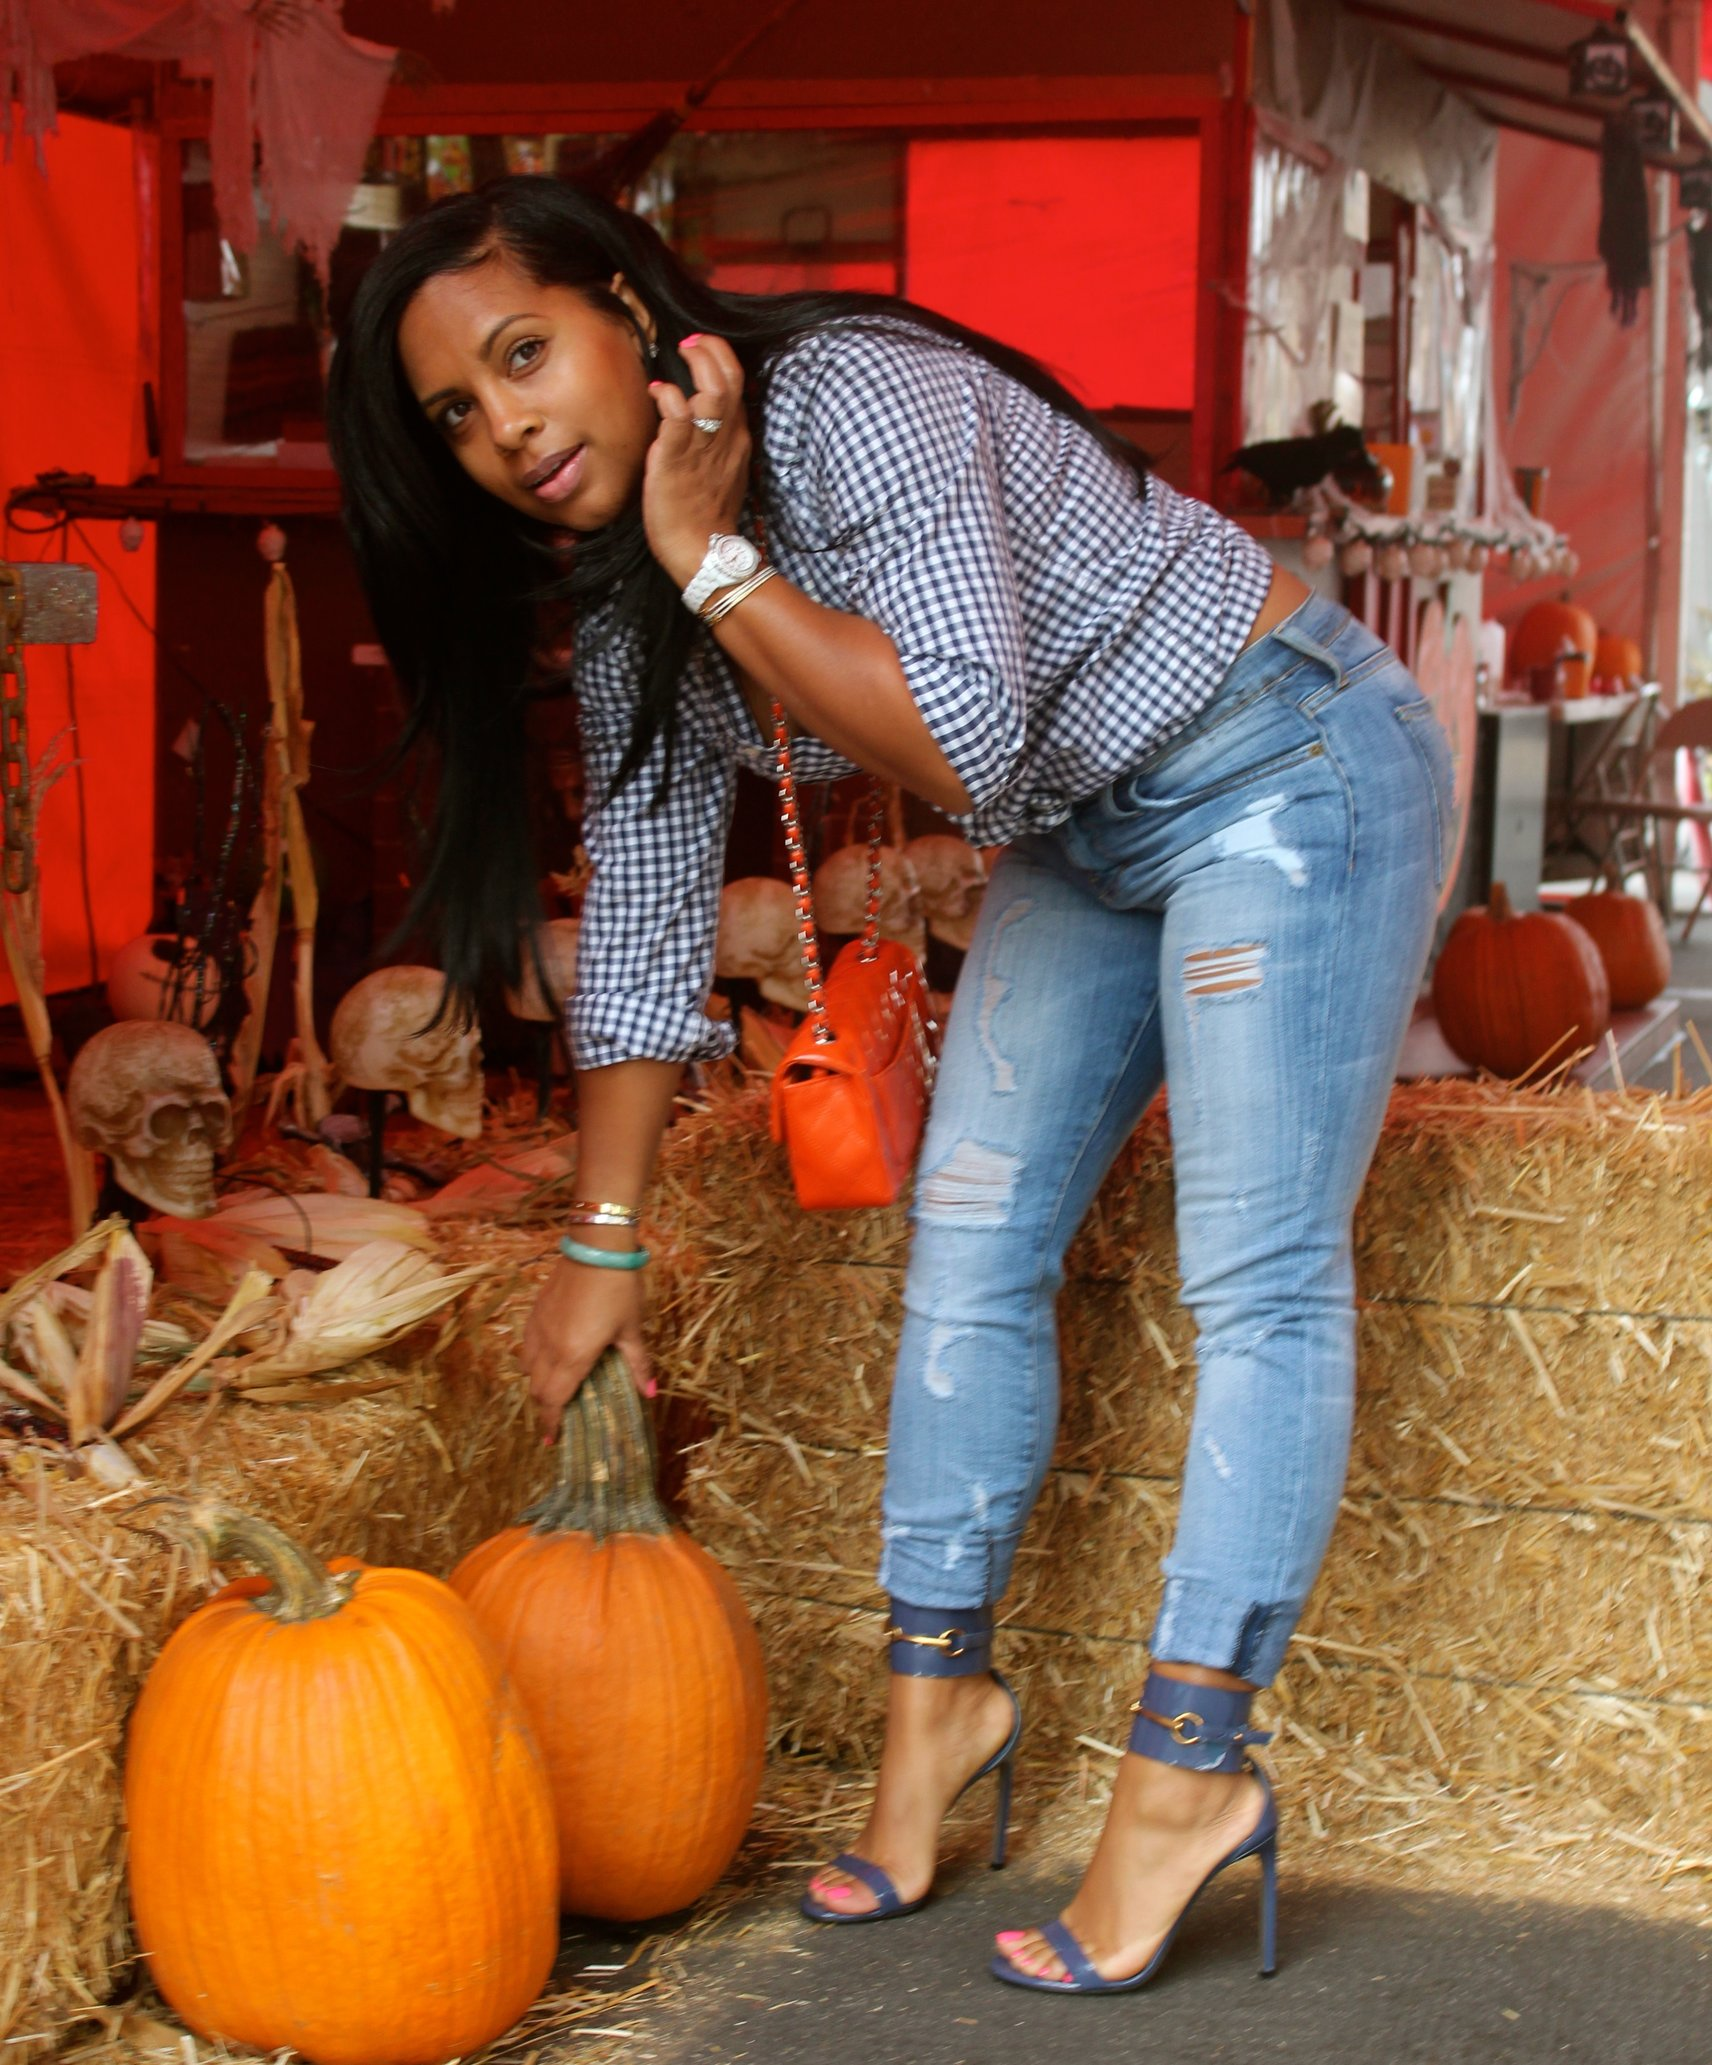 Black Female Fashion: Black Women Fashion Pumkin Patch Look Halloween